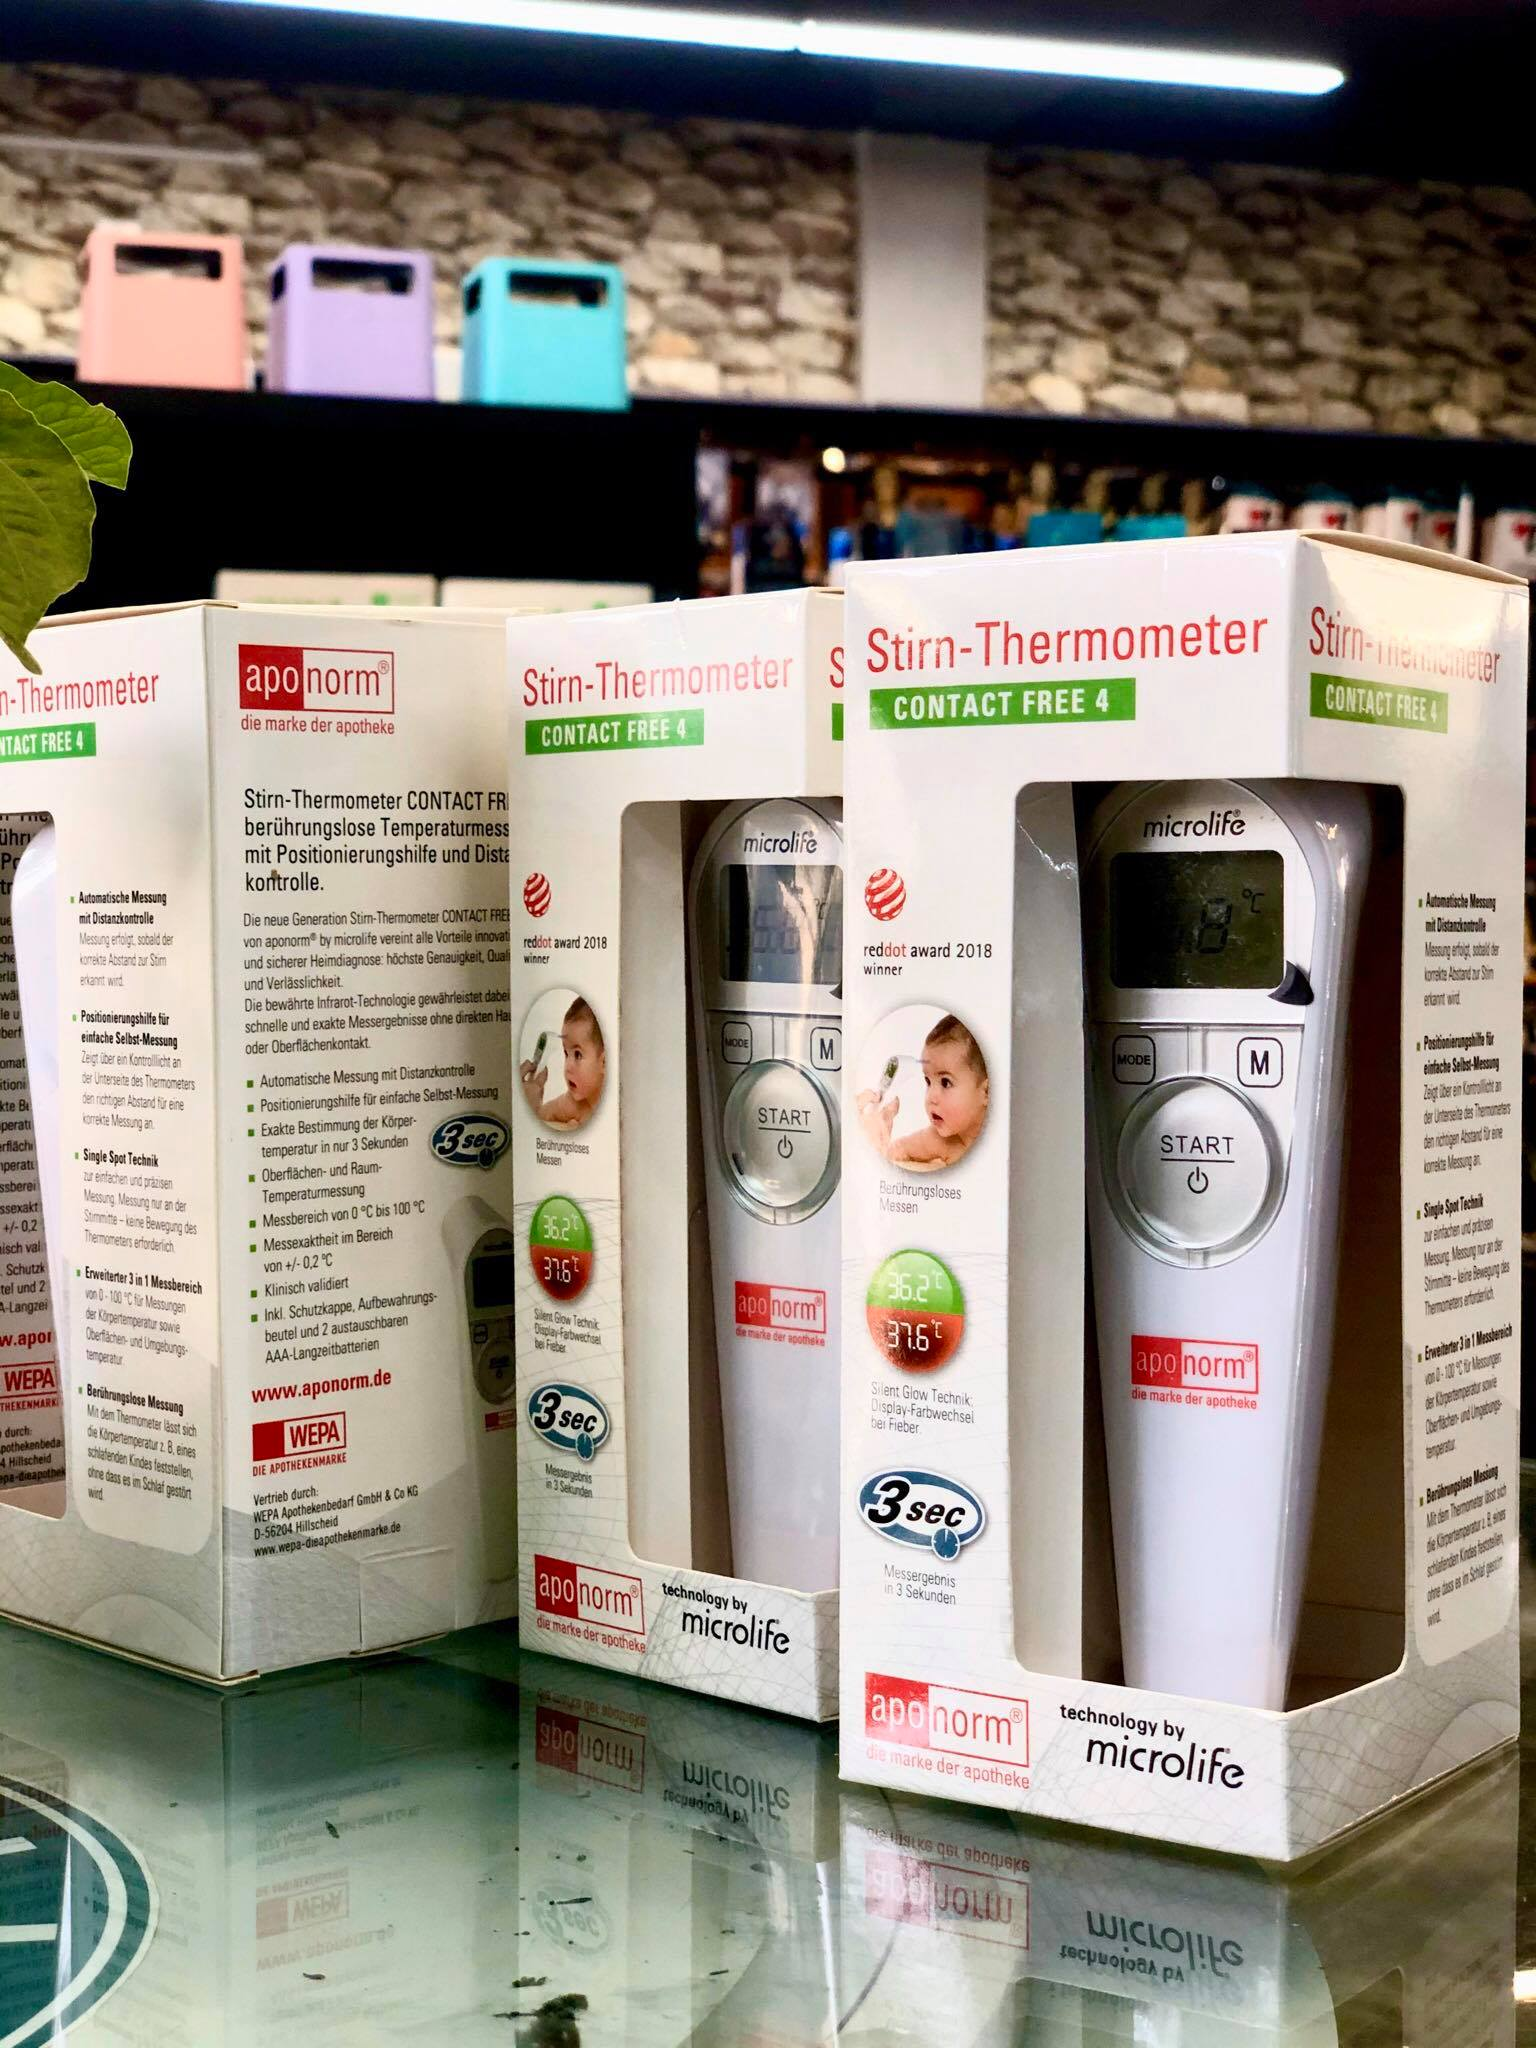 i1140 Microlife Stirn Thermometer - i-s-mart.com | No.1 Branded Online Shop in Cambodia